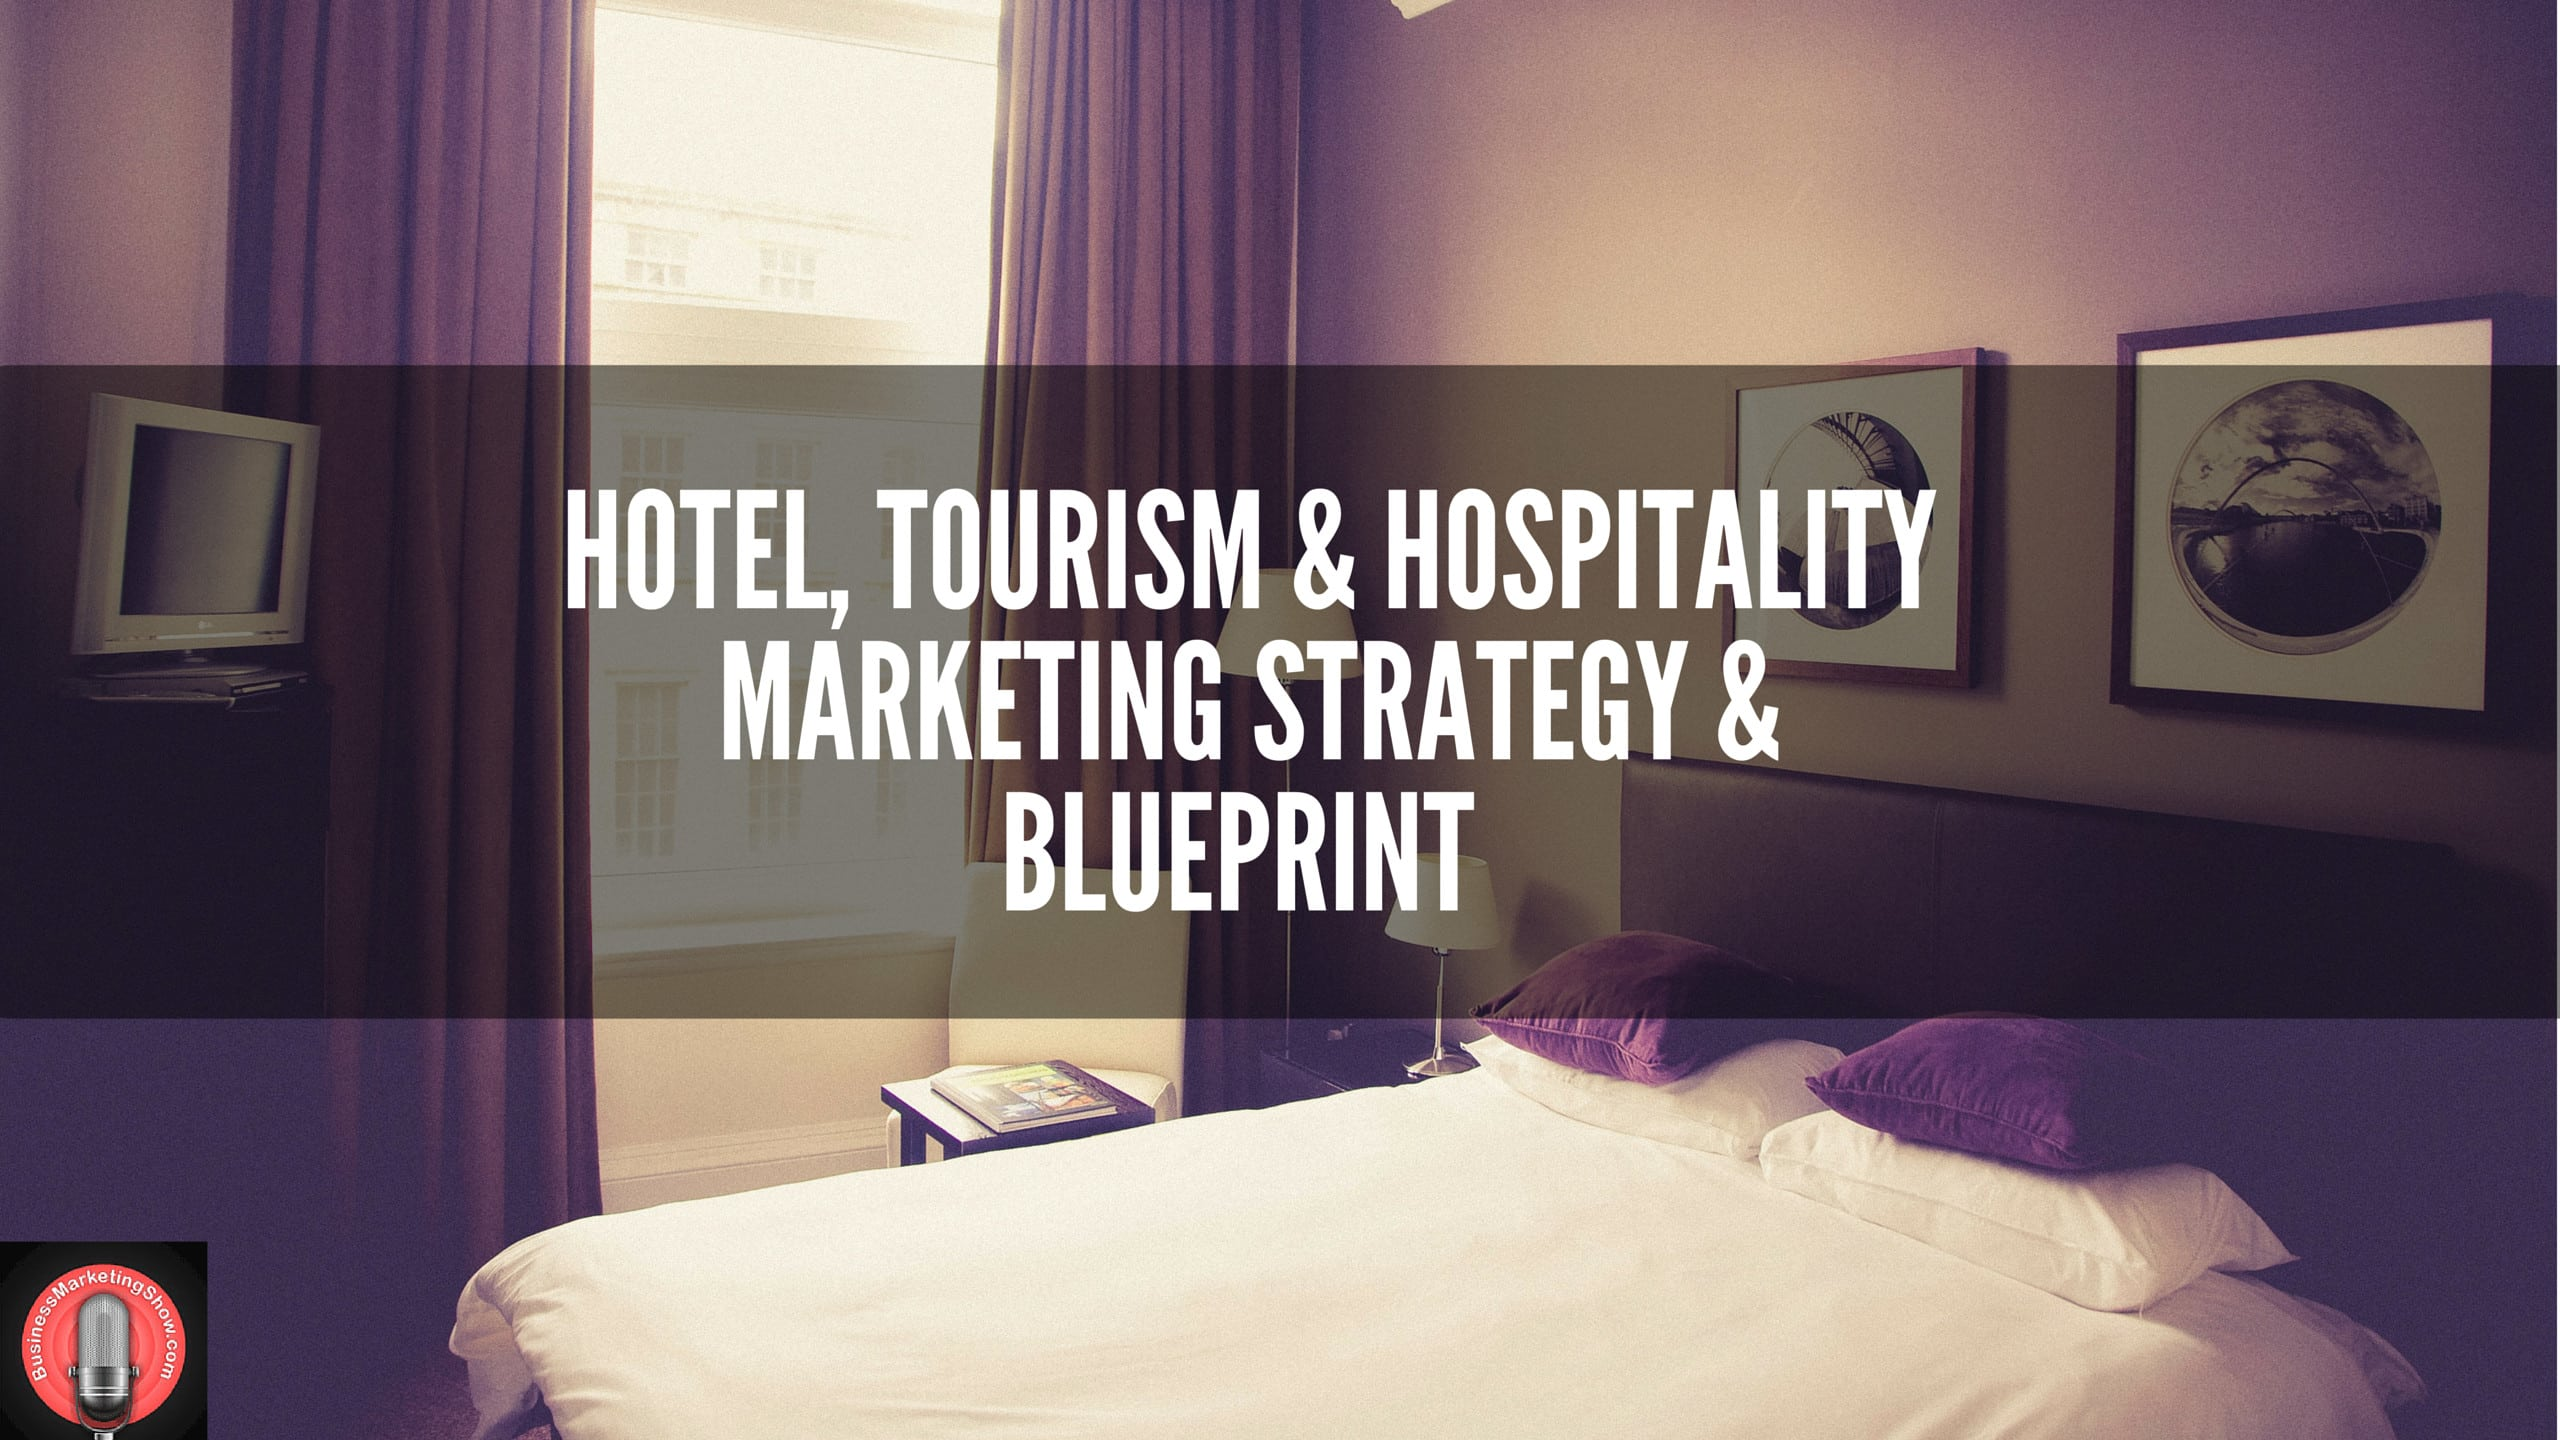 Hotel Hospitality and Tourism Online Marketing Strategy